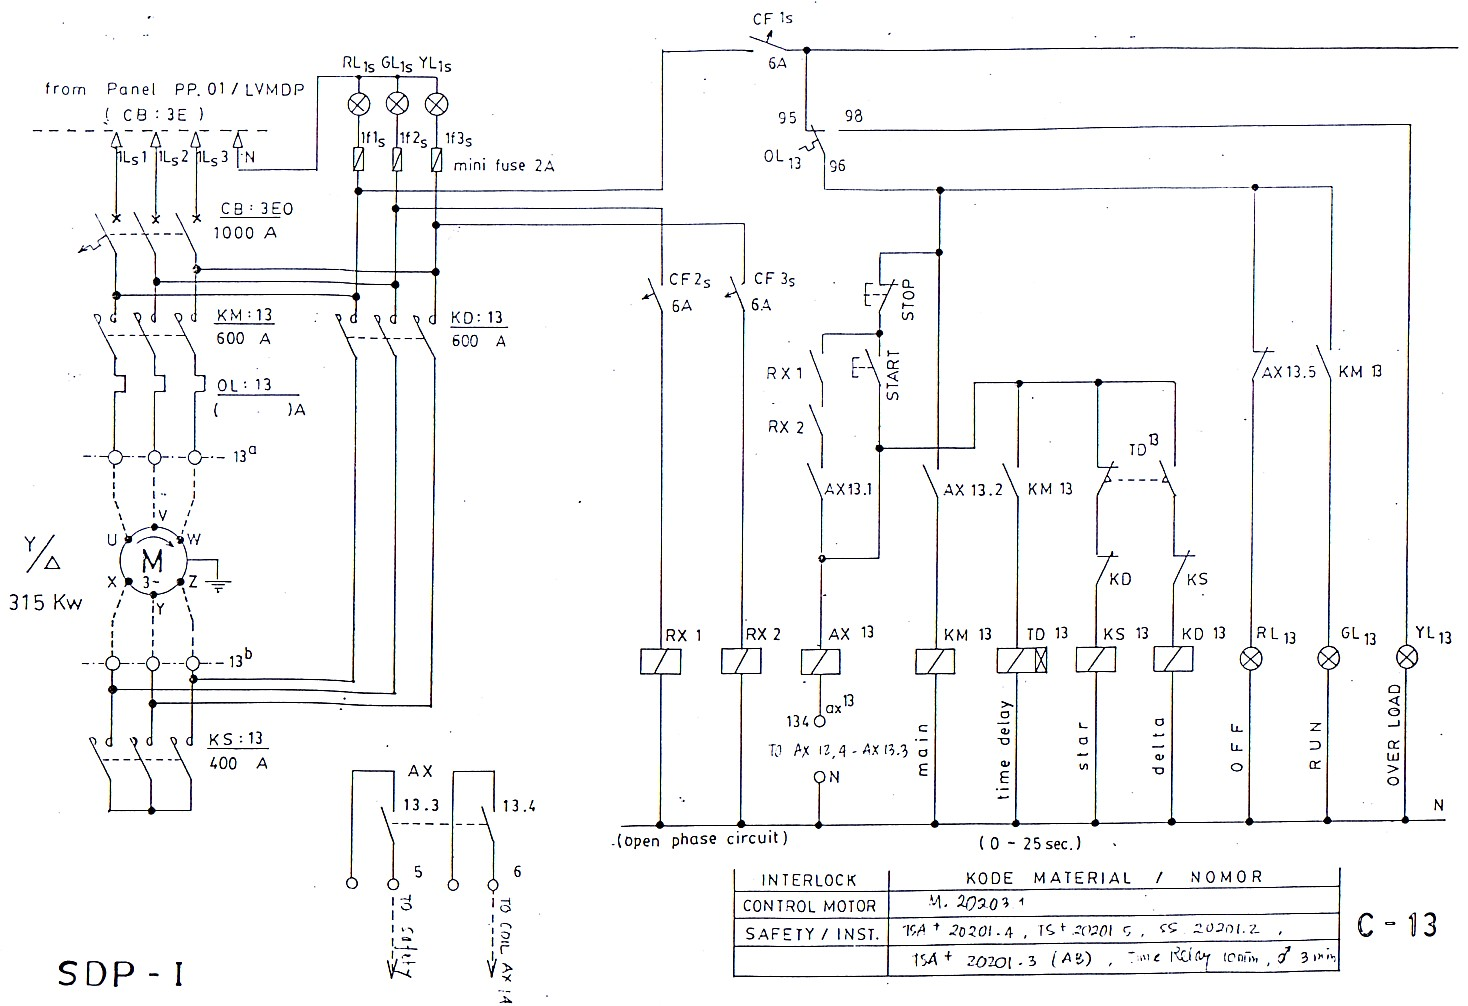 Wiring Diagram Panel Kapasitor Manual E Books Amf Librarysplit Air Conditioner Kamis 04 Juli 2013